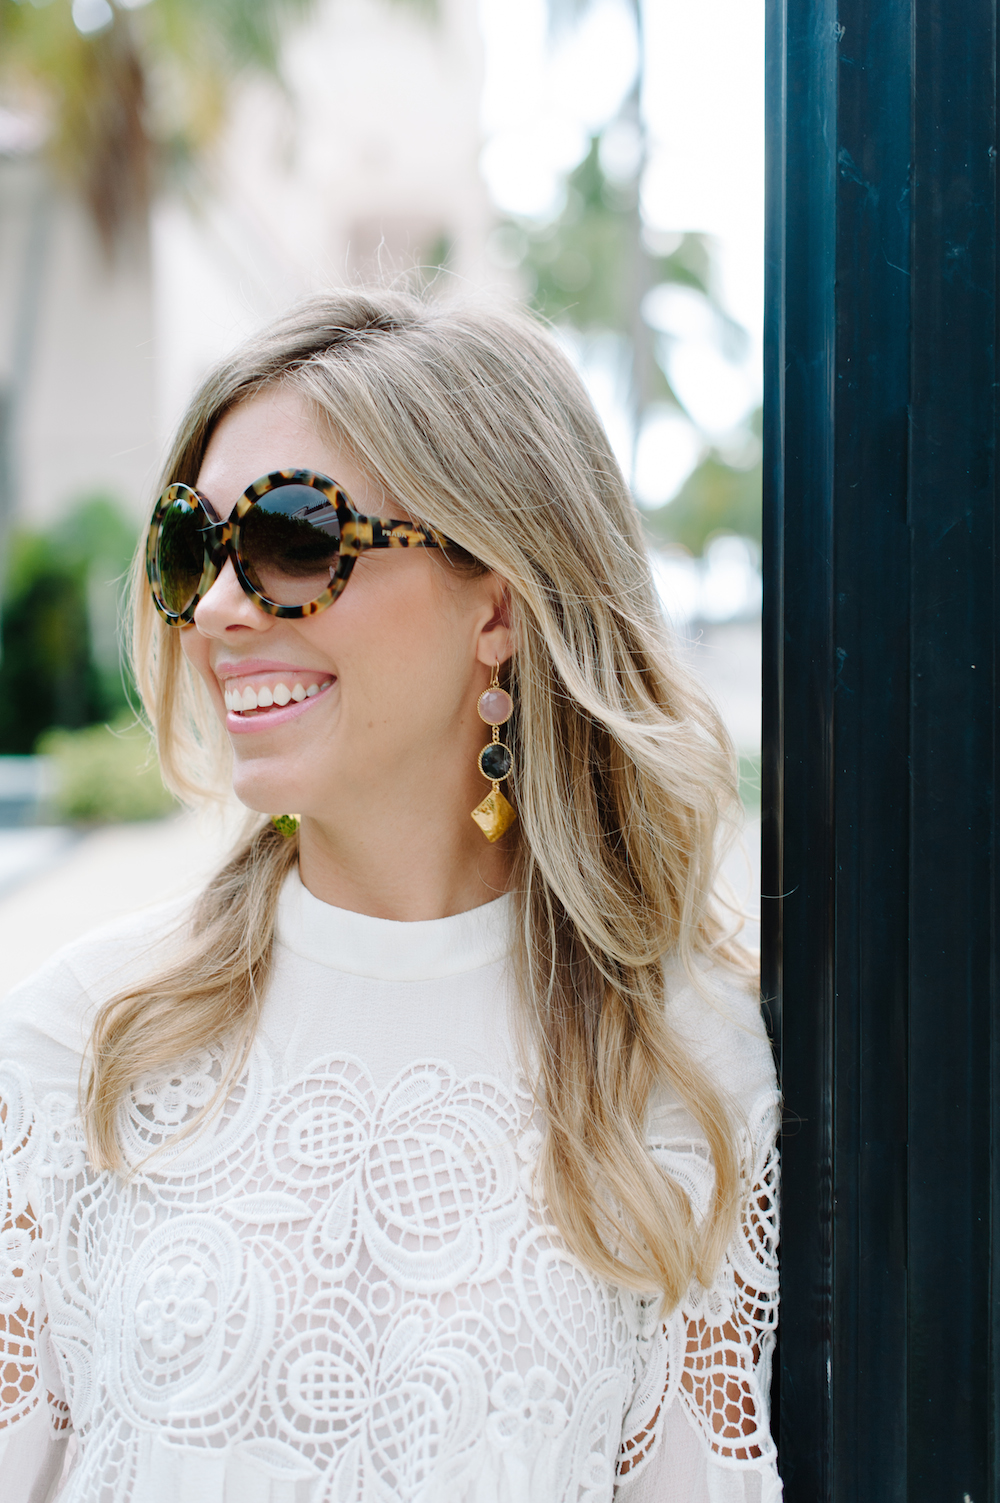 white_lace_blouse_sunglasses_earrings